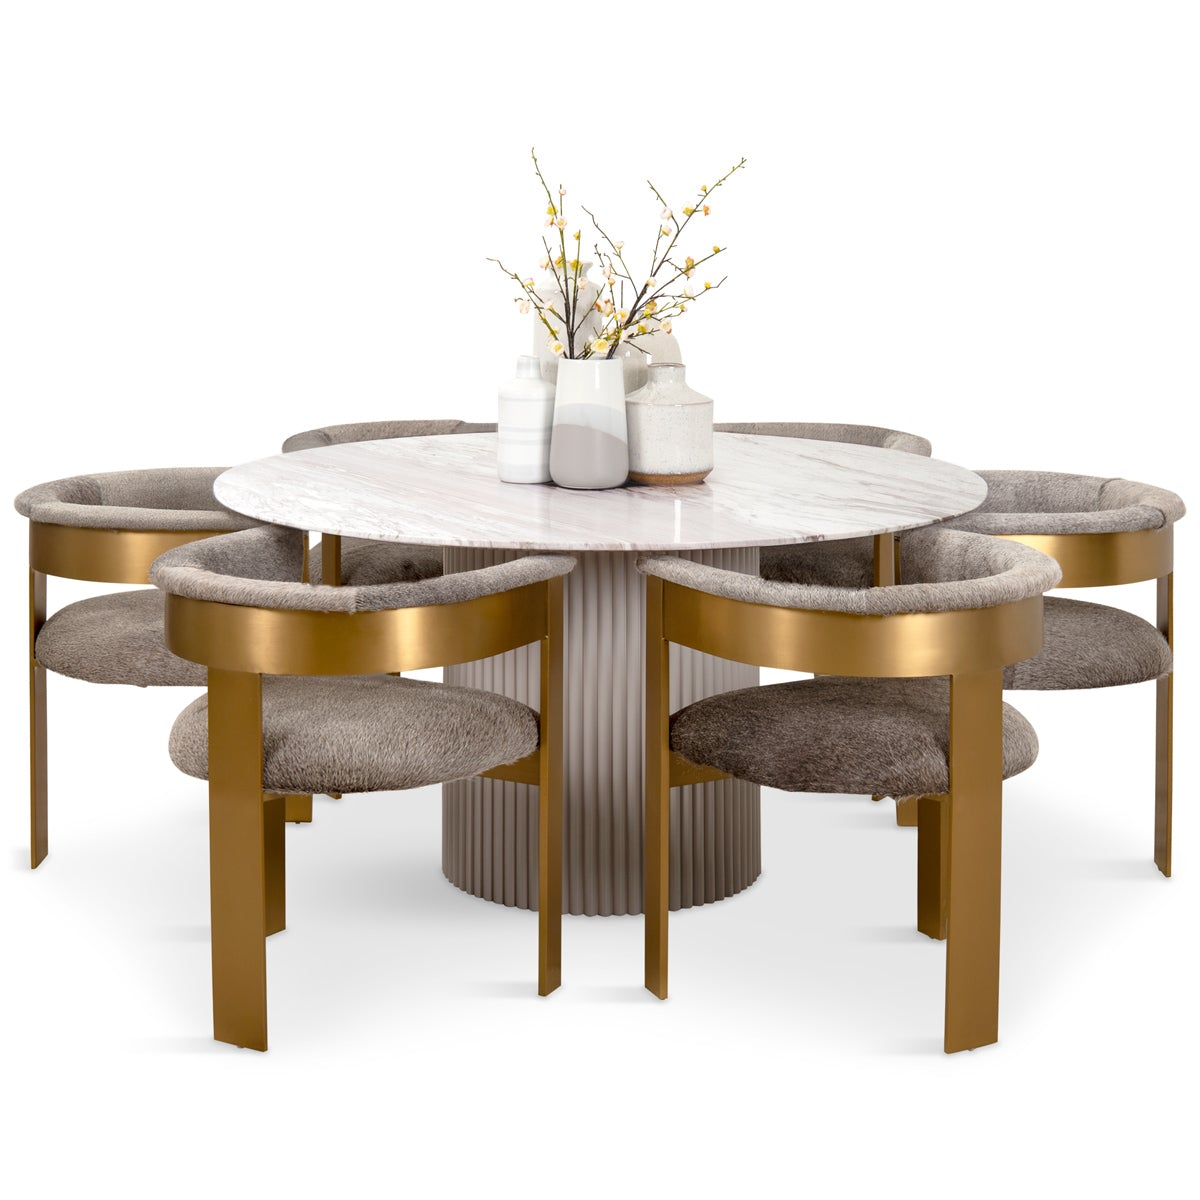 Enjoyable Ubud Round Dining Table Modshop Home Interior And Landscaping Ologienasavecom